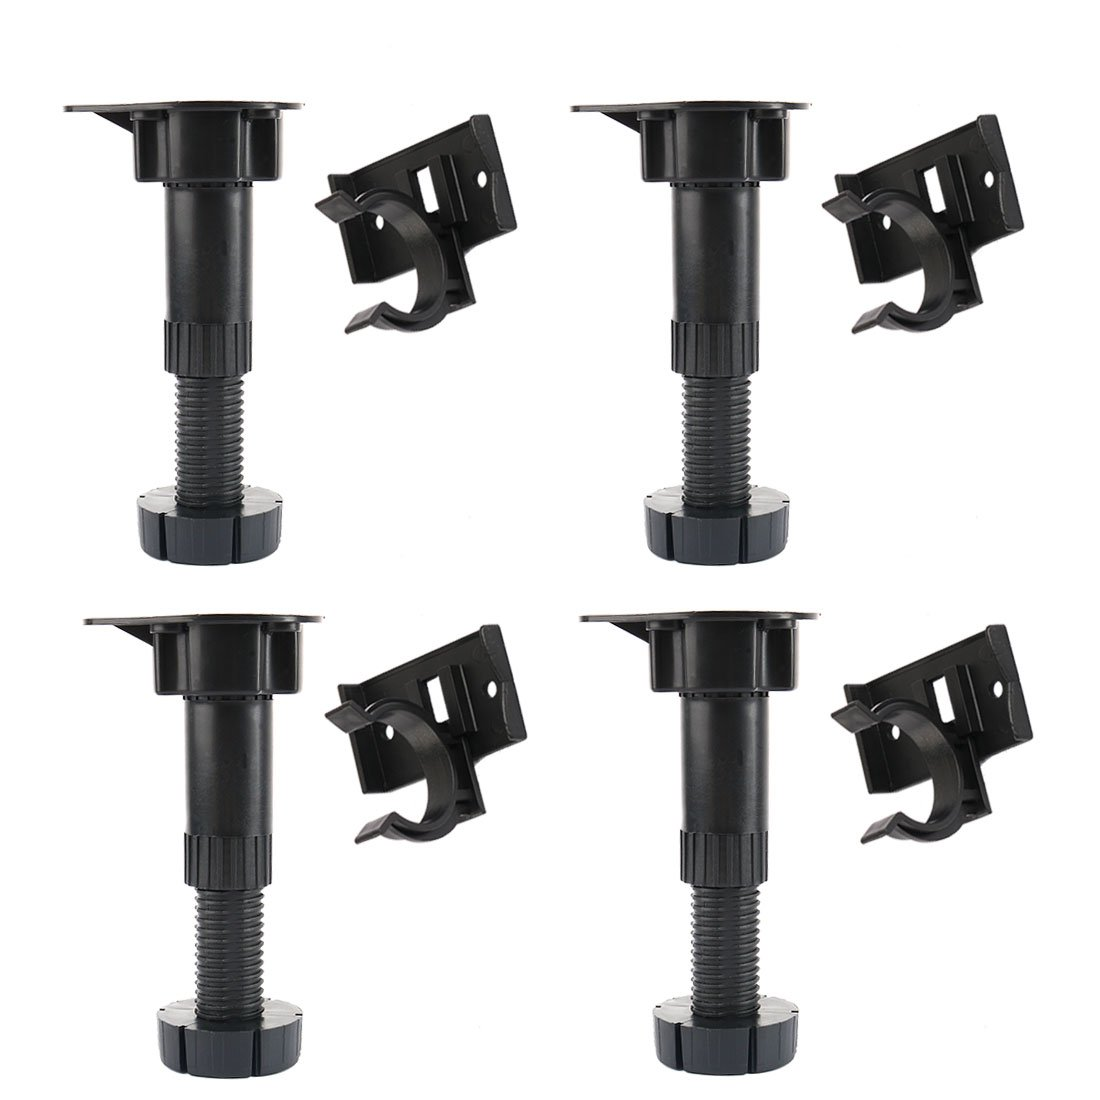 Adjustable Height Cabinet Cupboard Leg Foot for Kitchen Bathroom 4pcs uxcell a15072700ux0255